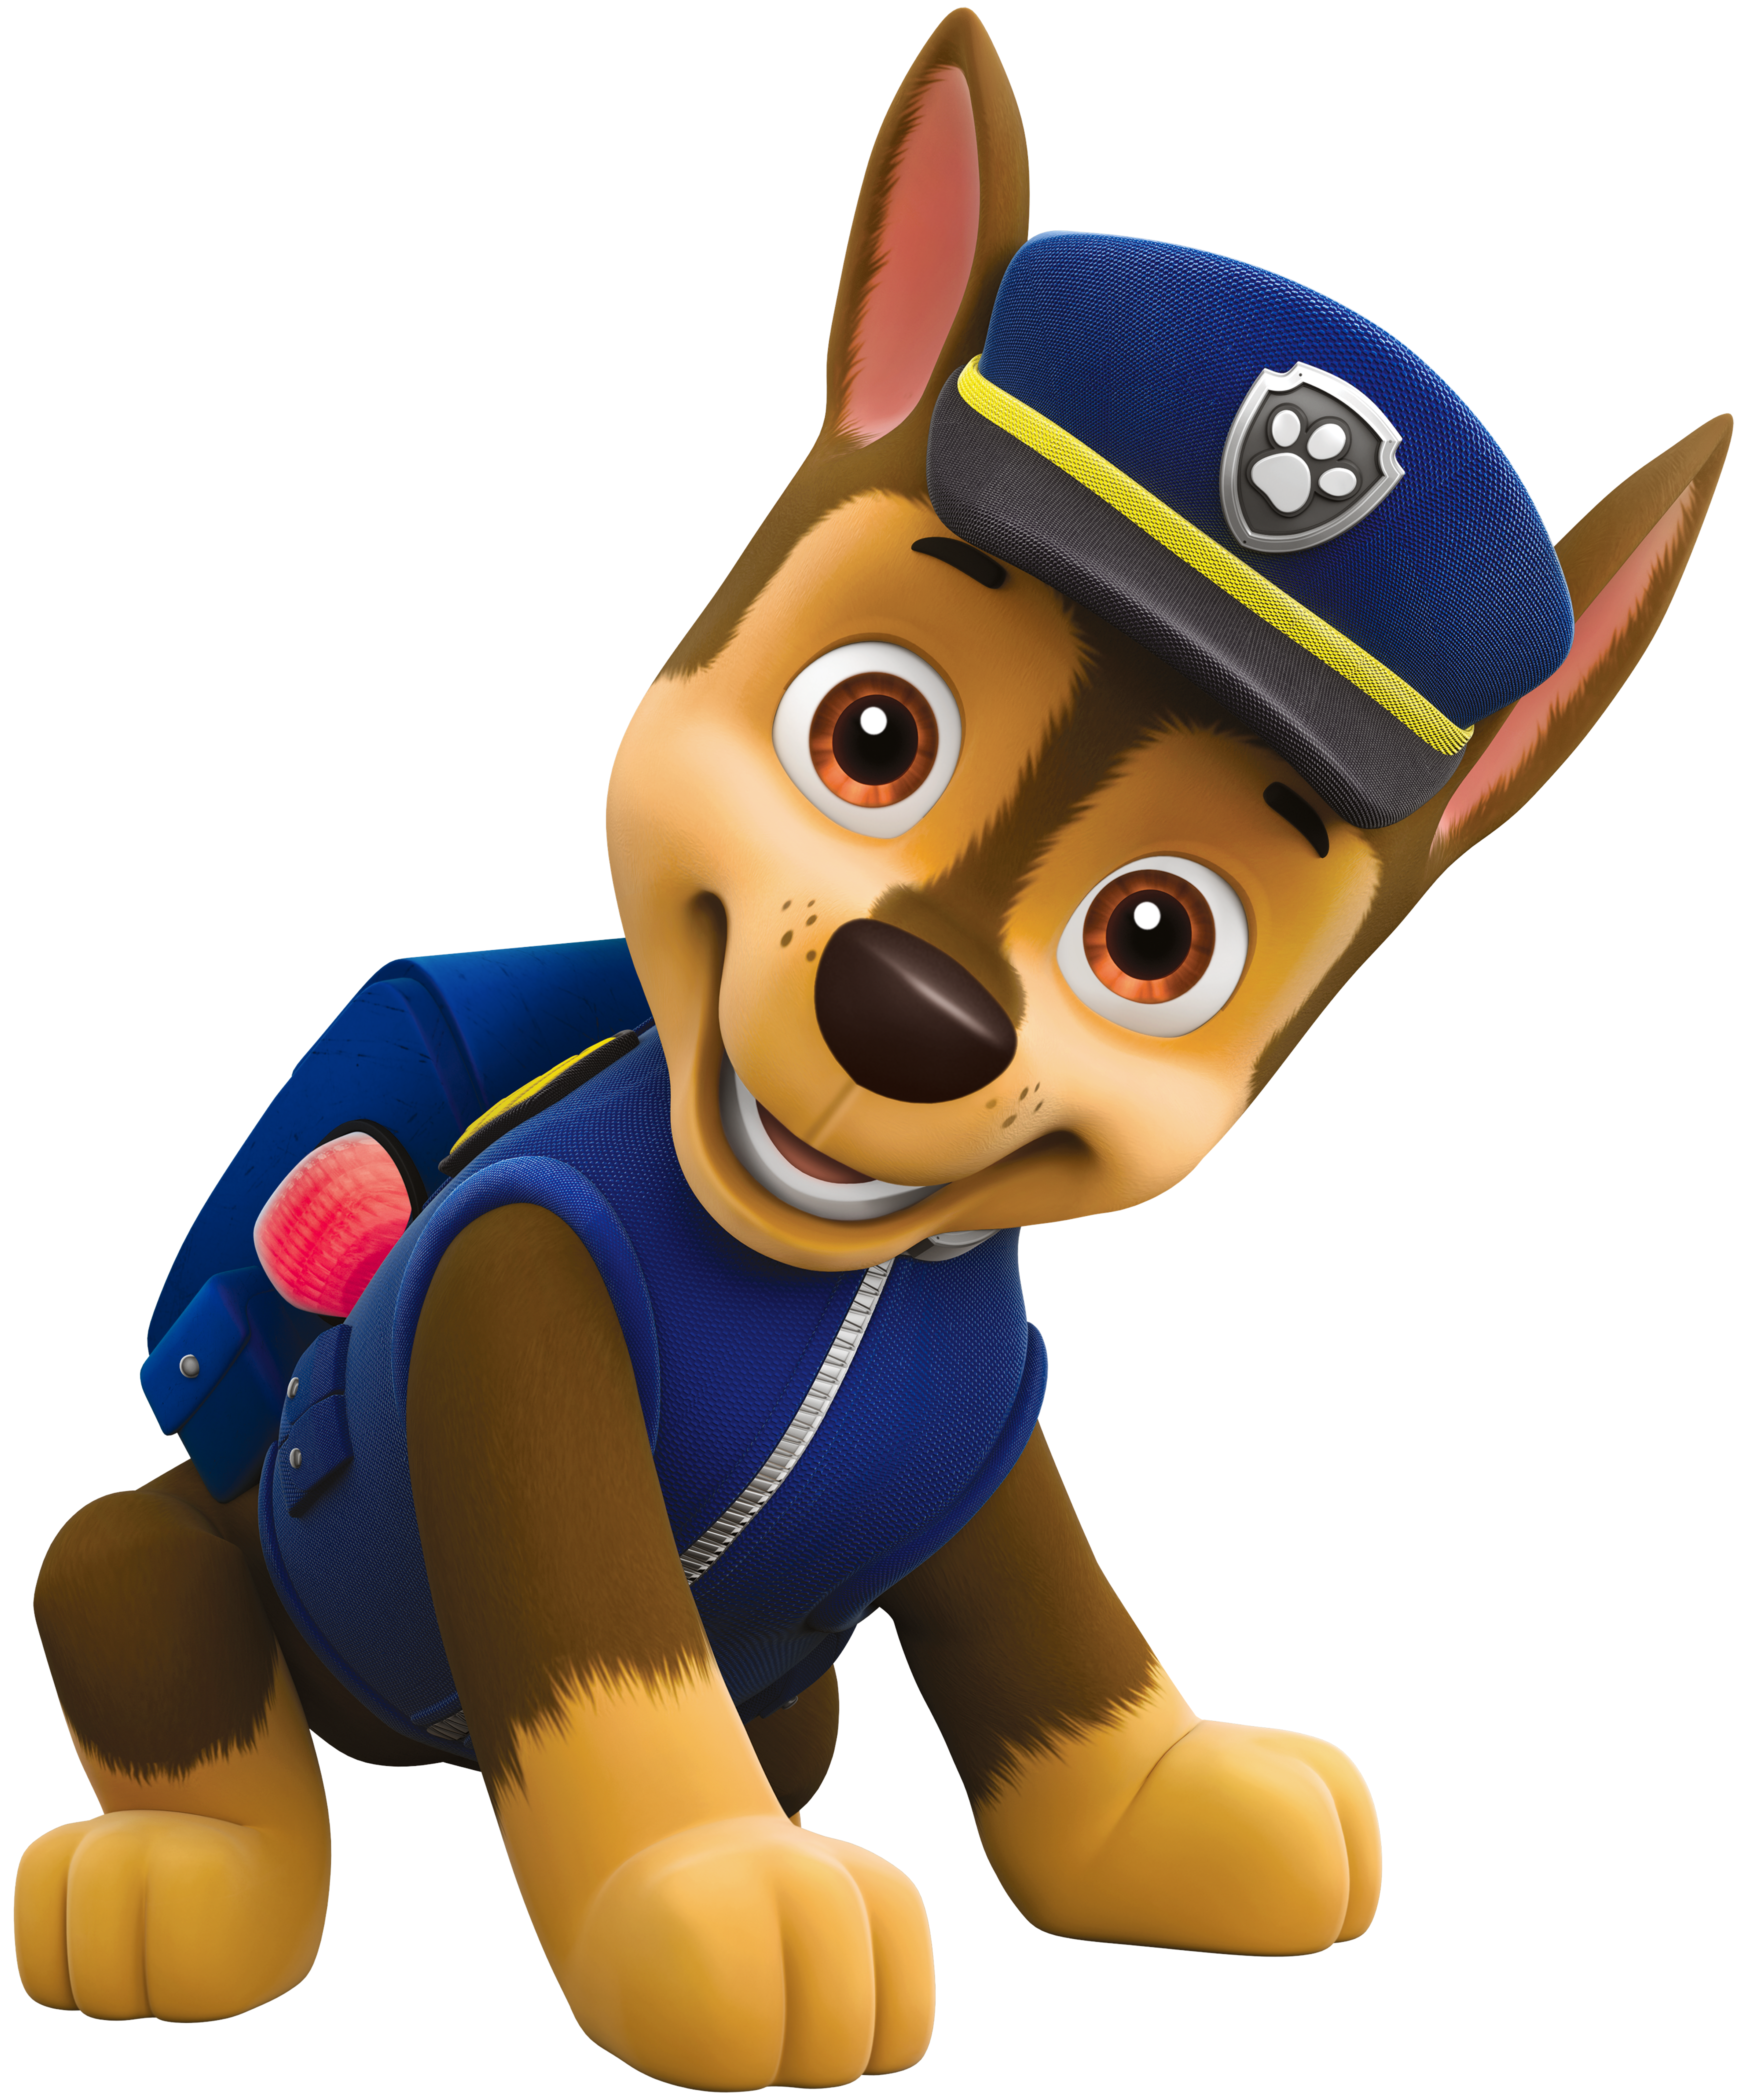 Chase cartoon image gallery. Paw patrol png images